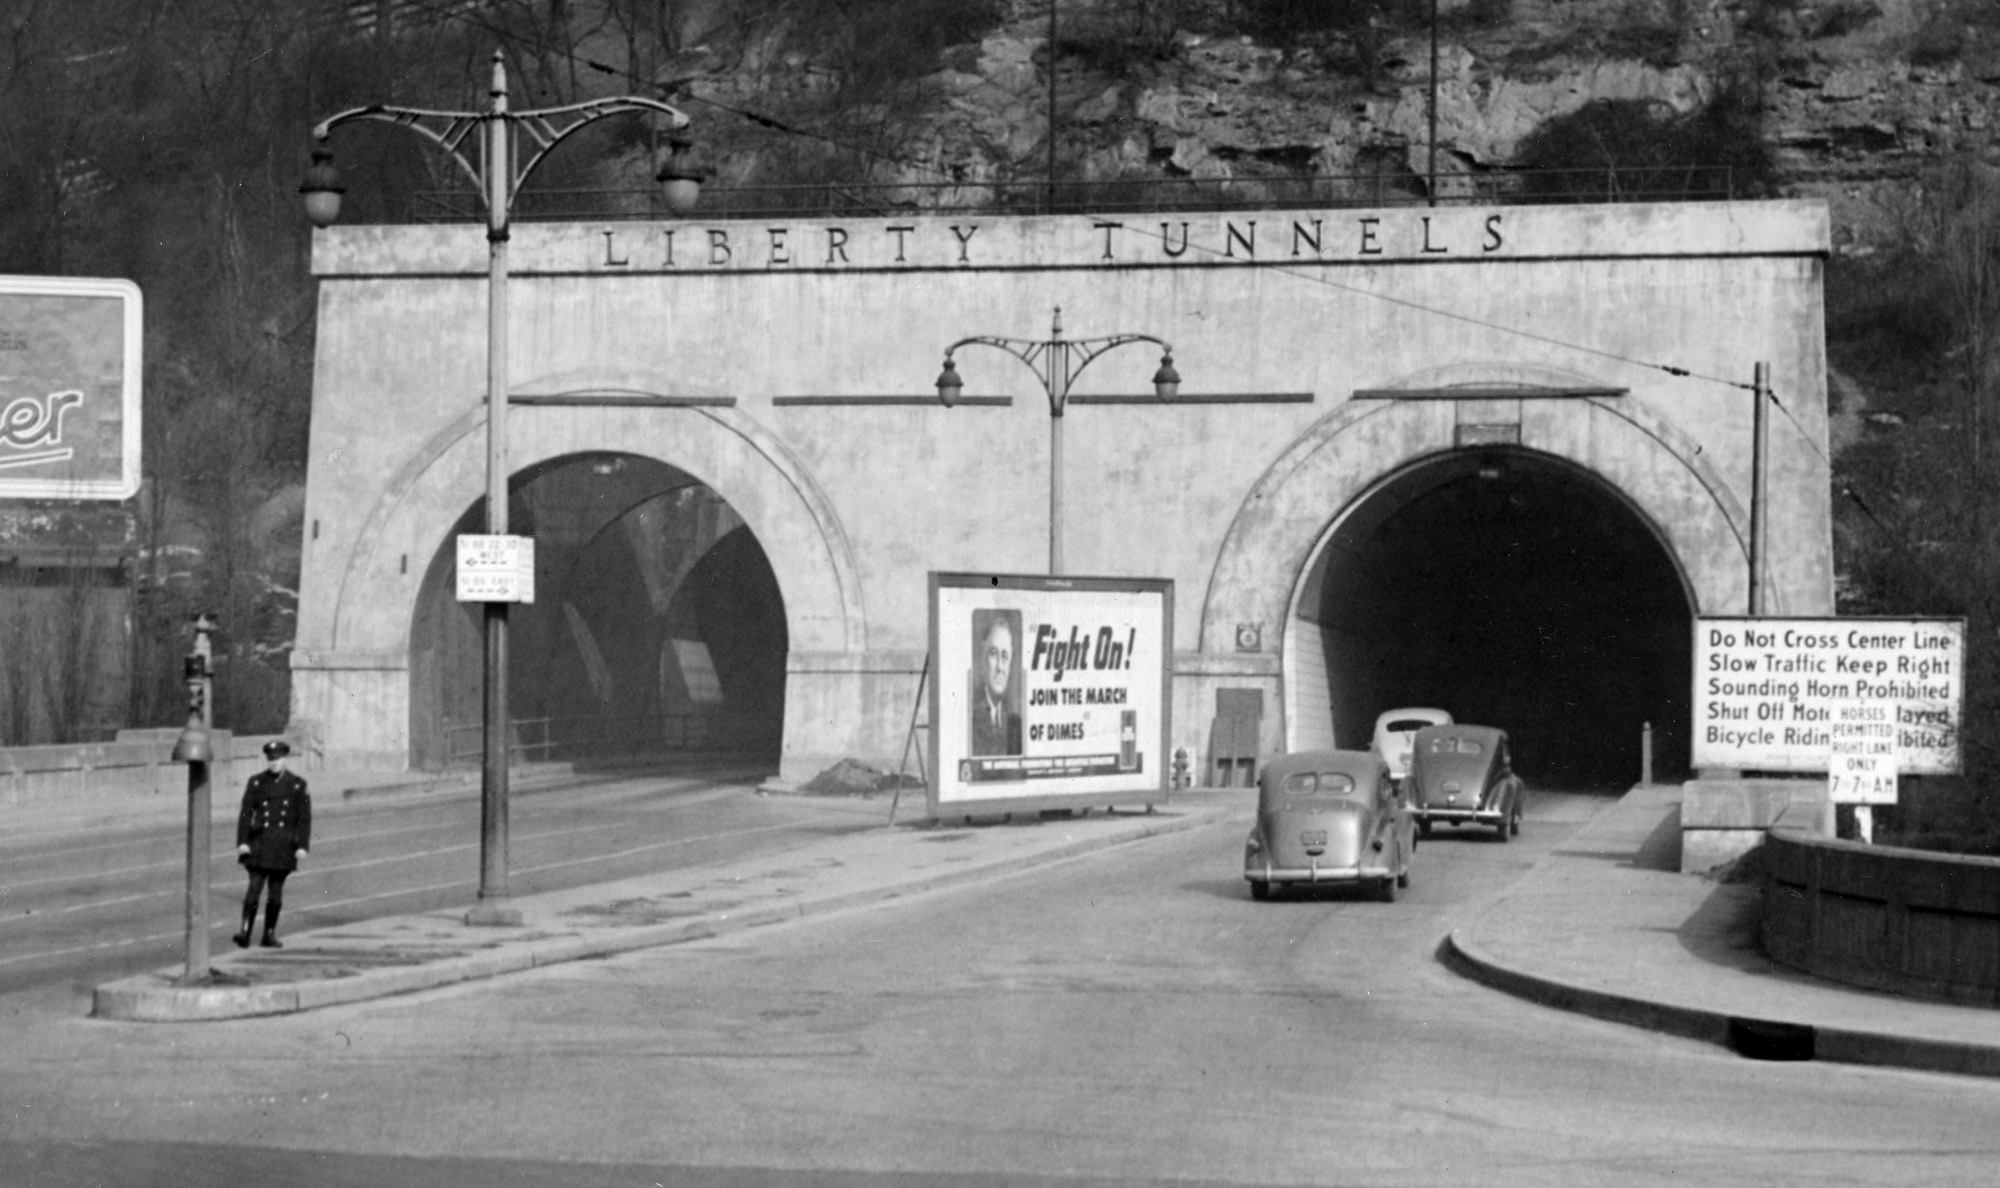 At the Liberty Tunnel's southern end, the Liberty Tubes on Jan 29, 1946. (Post-Gazette)